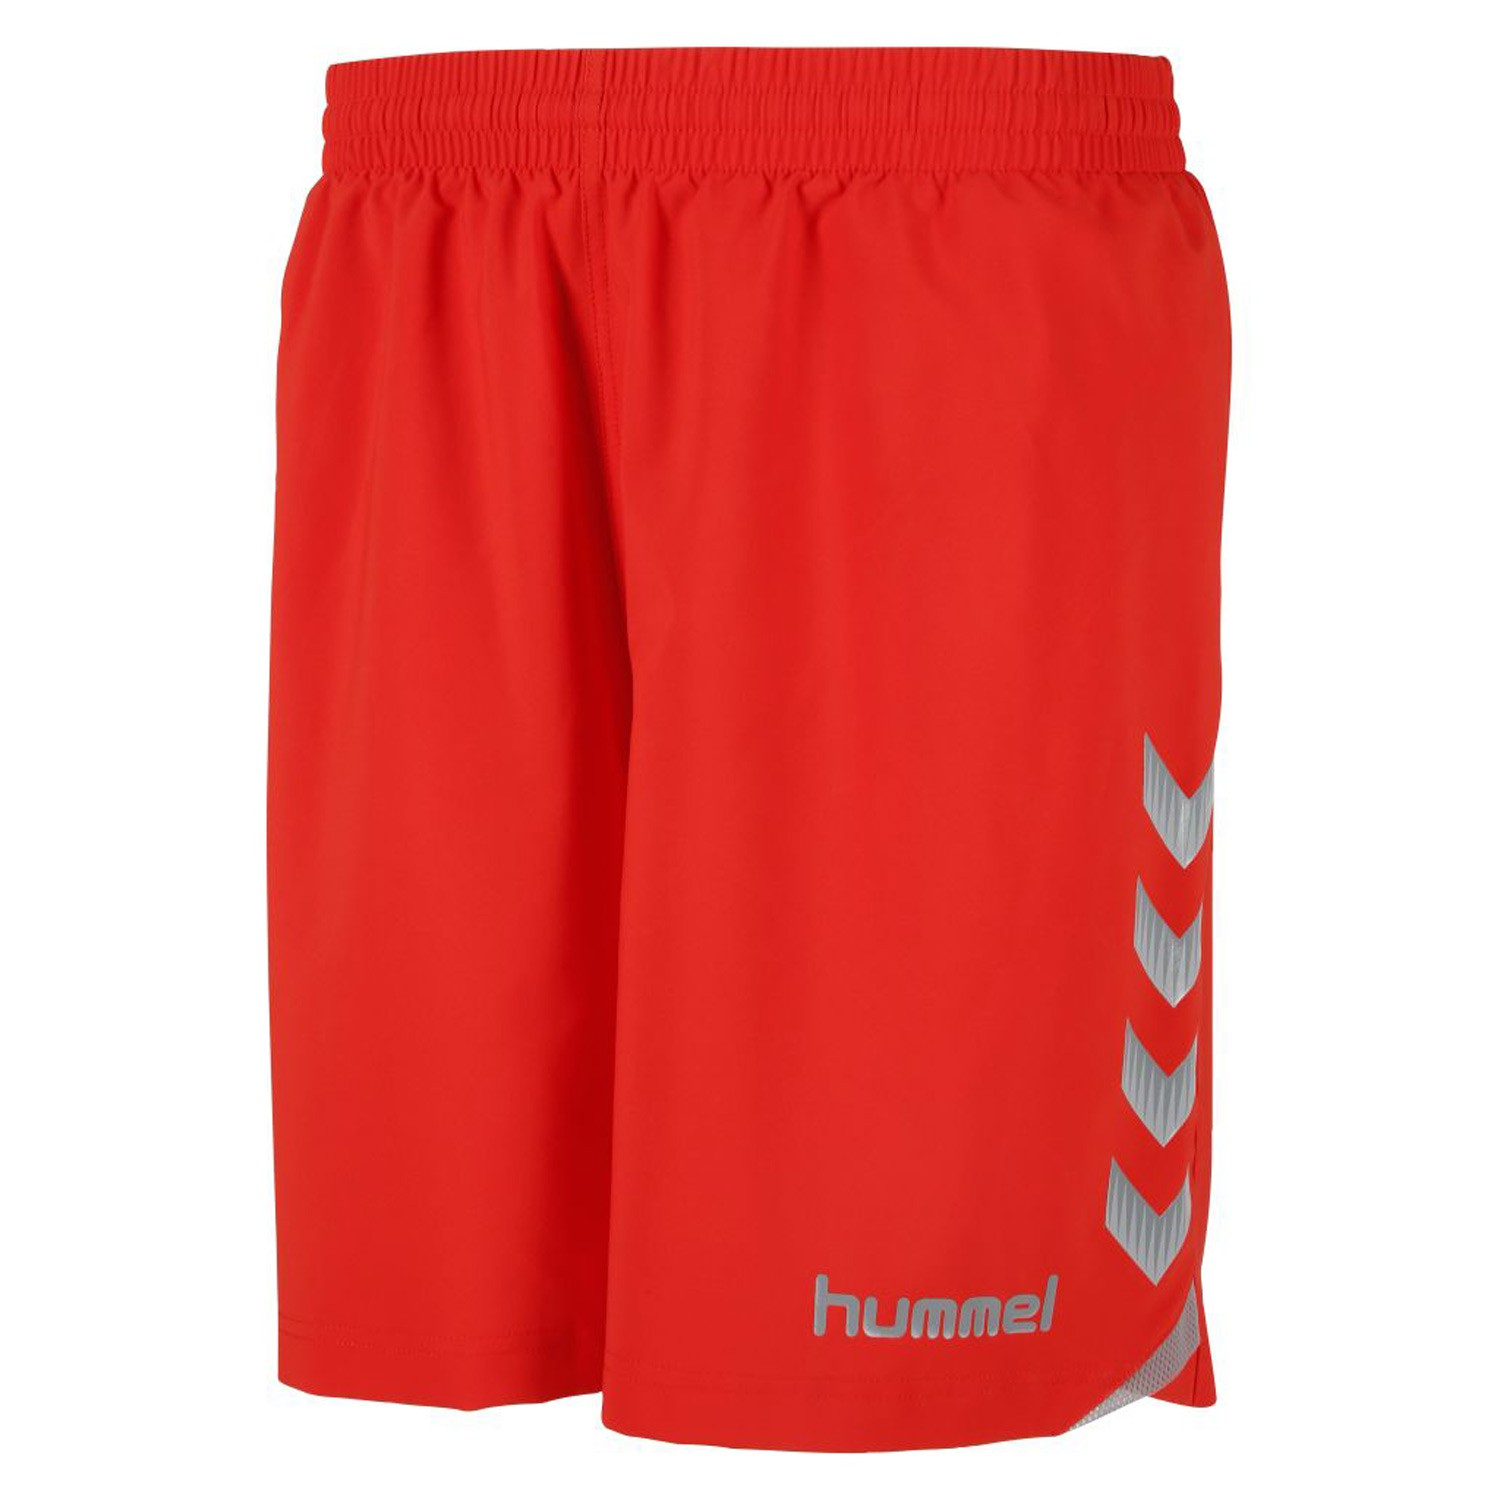 handball shorts hosen ebay all basketball scores info